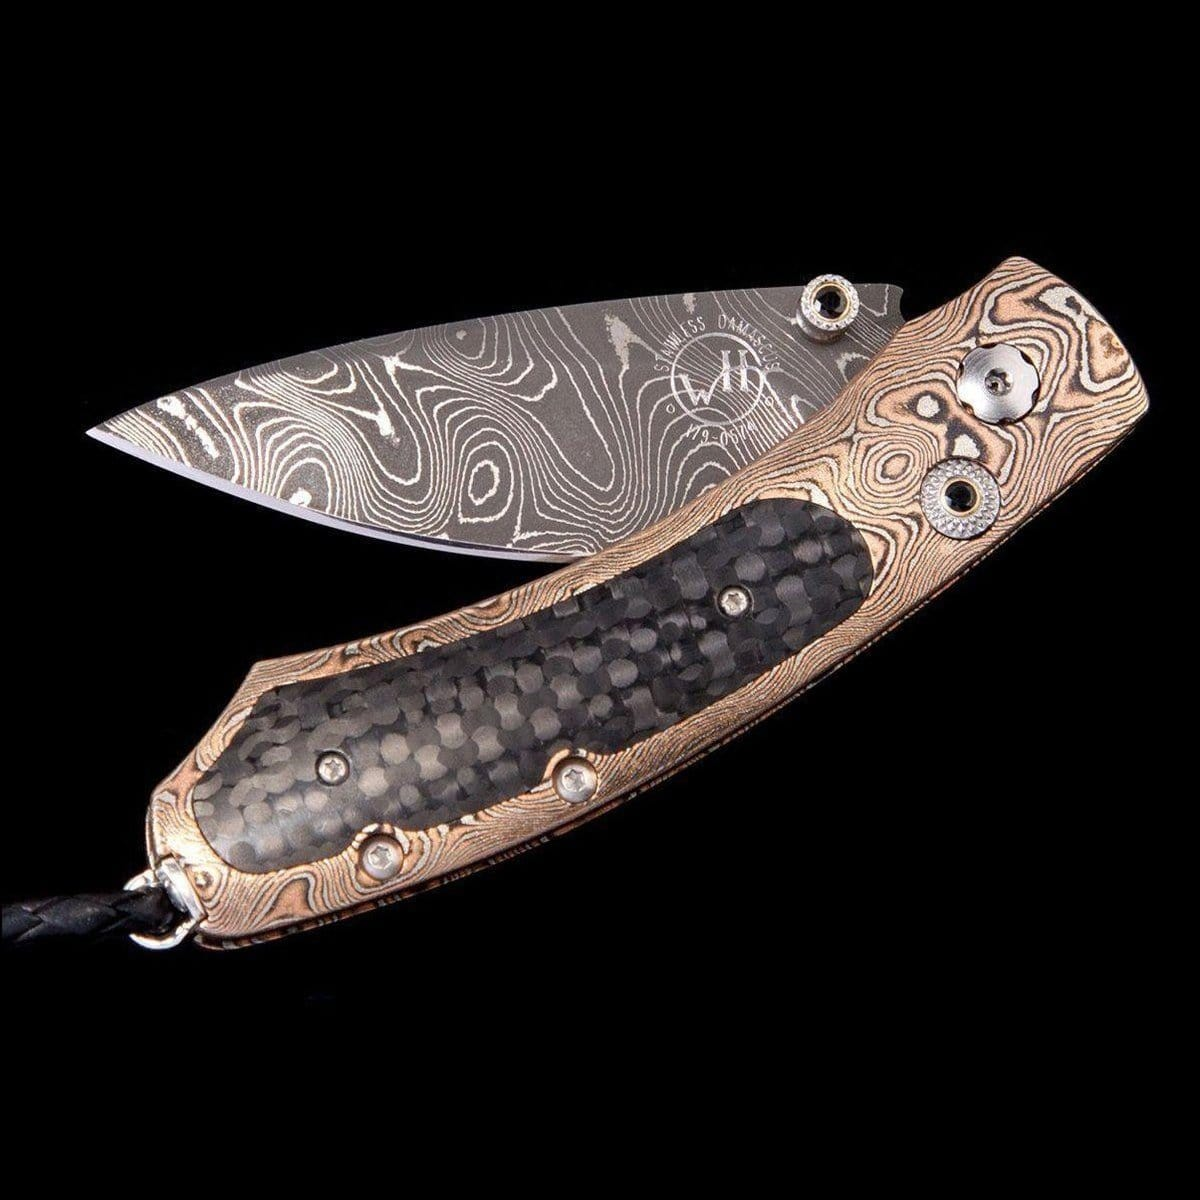 Kestrel Raven Limited Edition Knife - B09 RAVEN